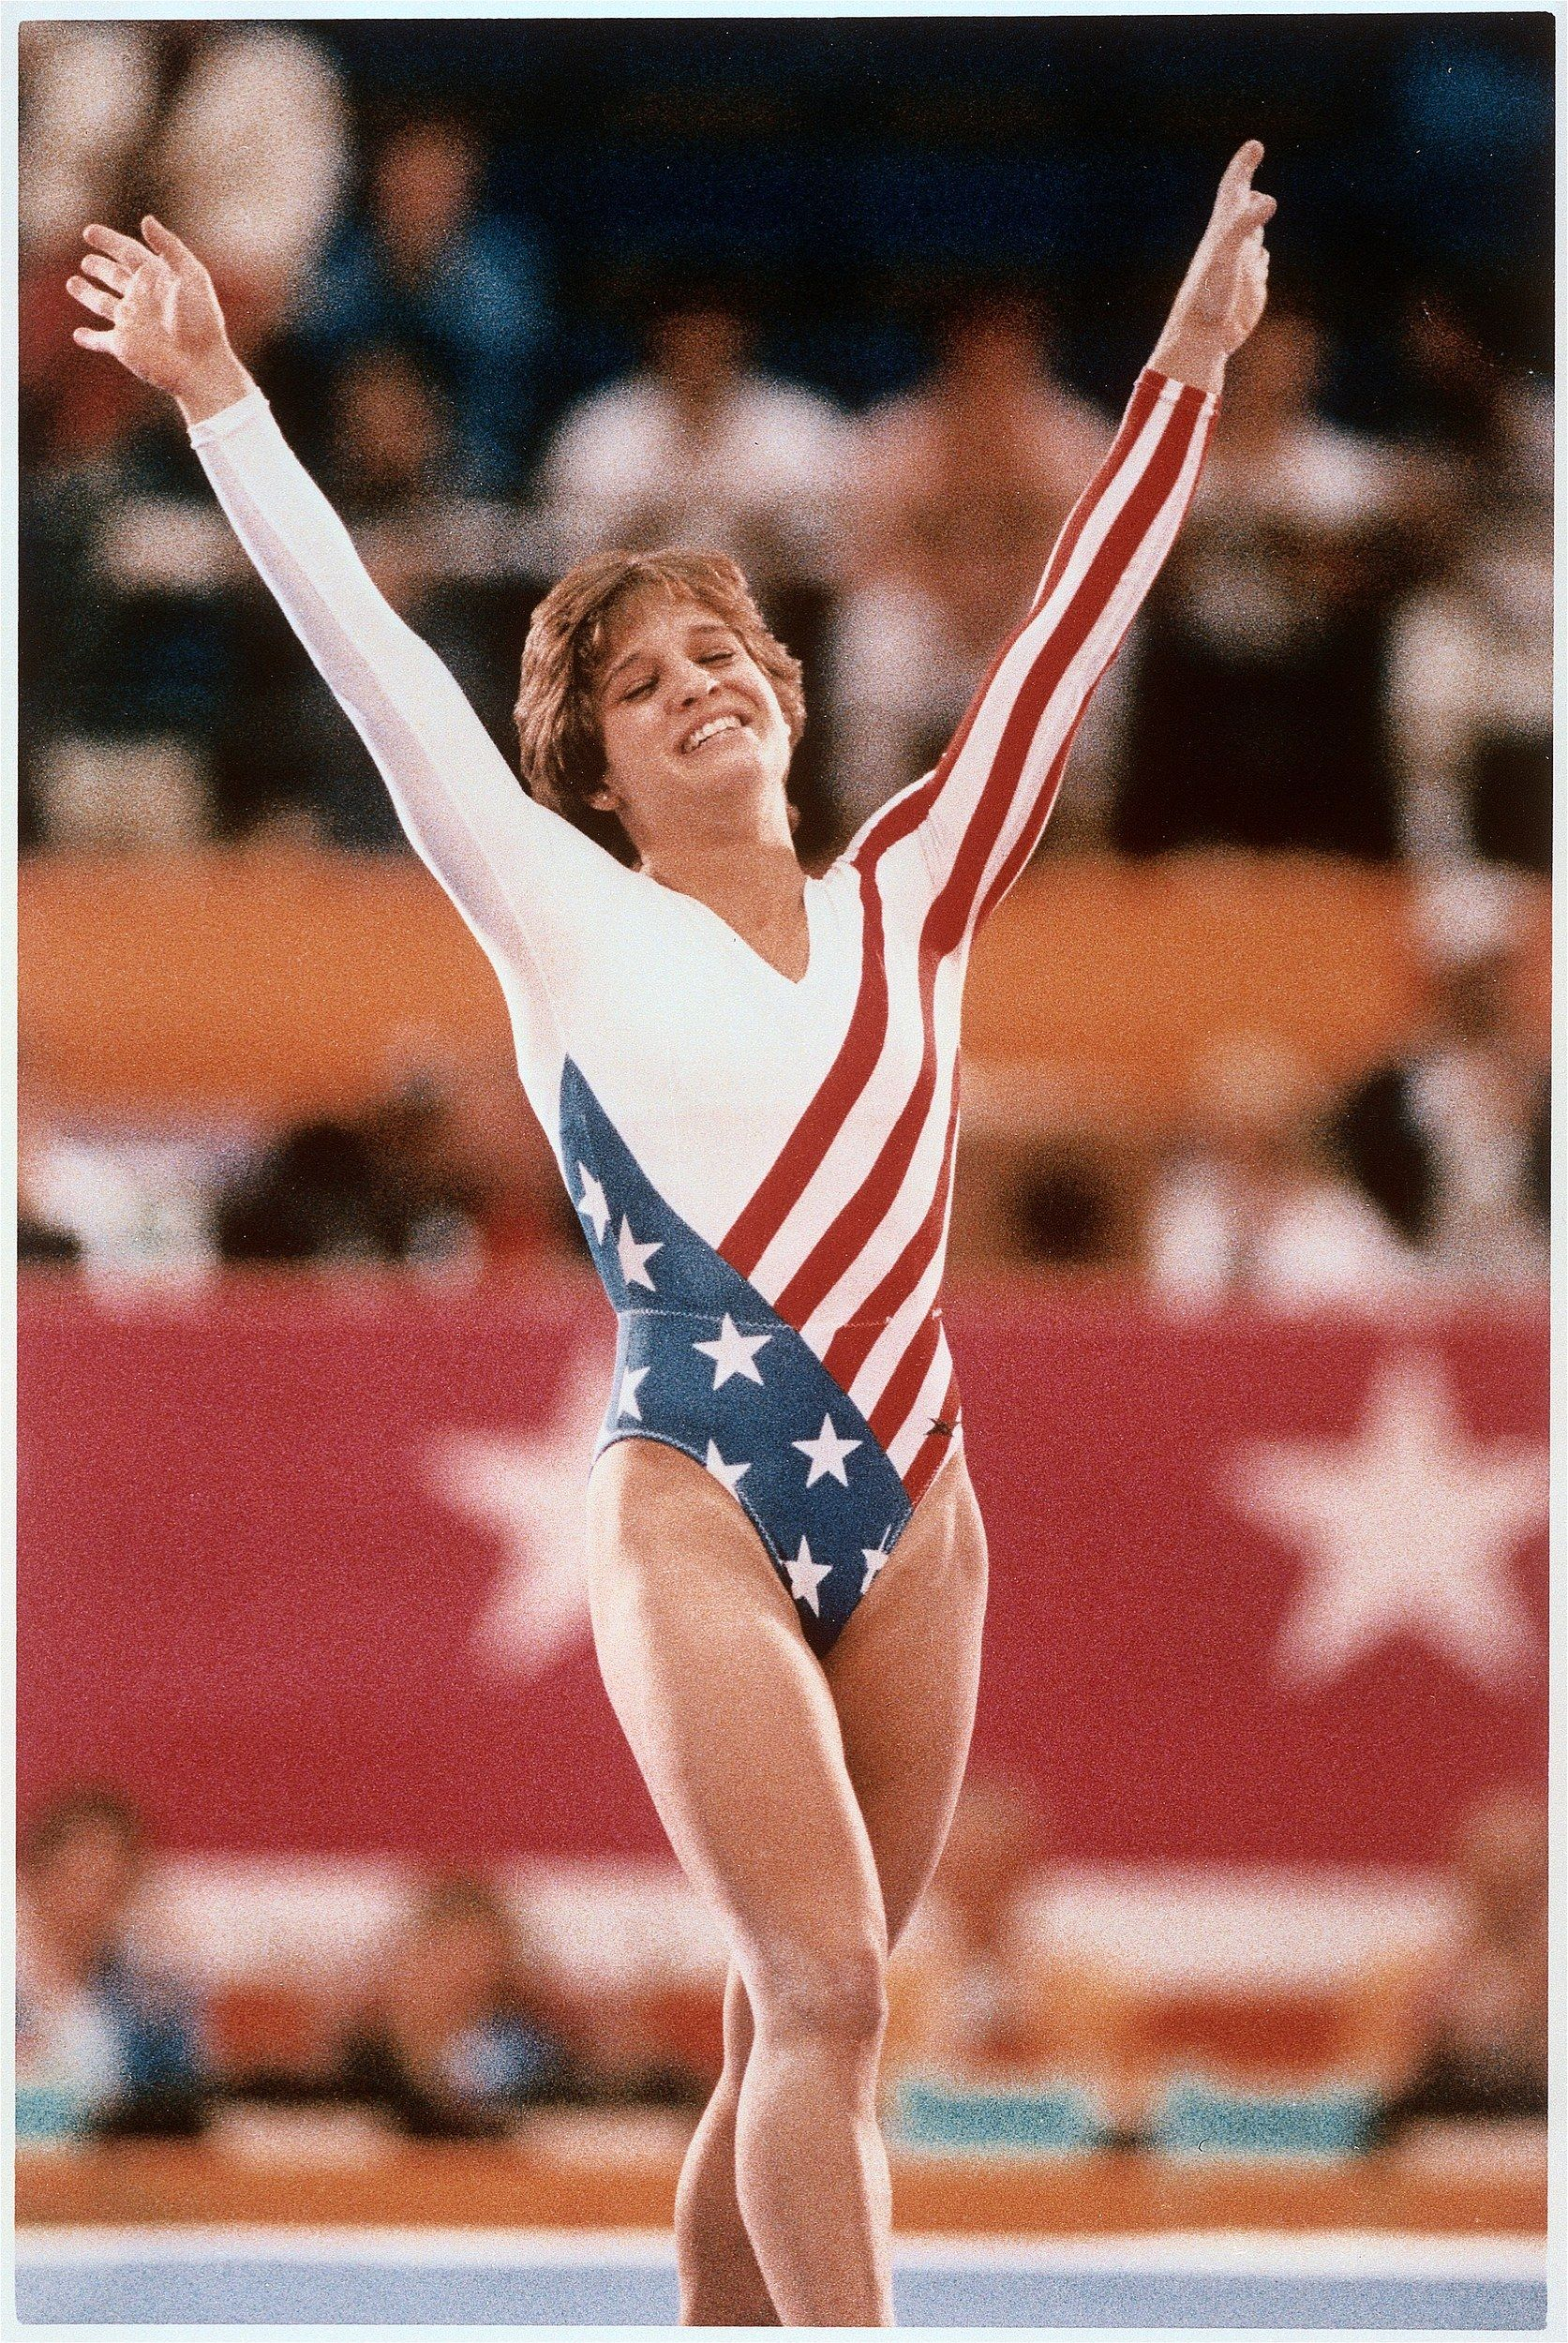 Watch Mary Lou Retton 5 Olympic medals video